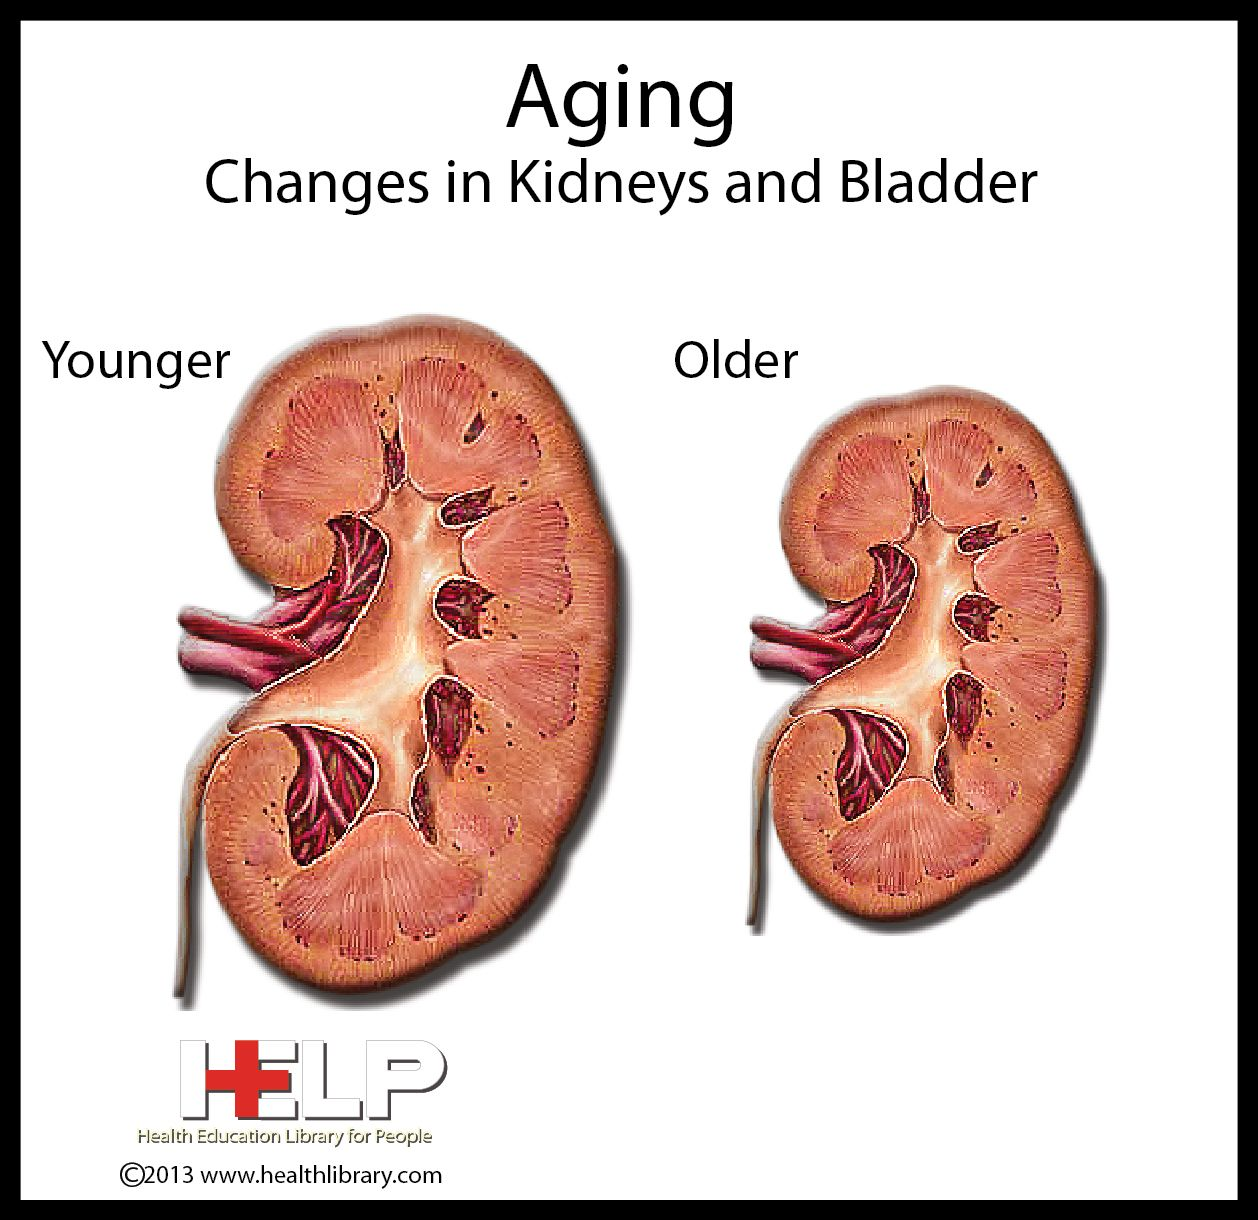 physiology of aging Physiological changes occur with aging in all organ systems the cardiac output  decreases, blood pressure increases and arteriosclerosis develops the lungs.